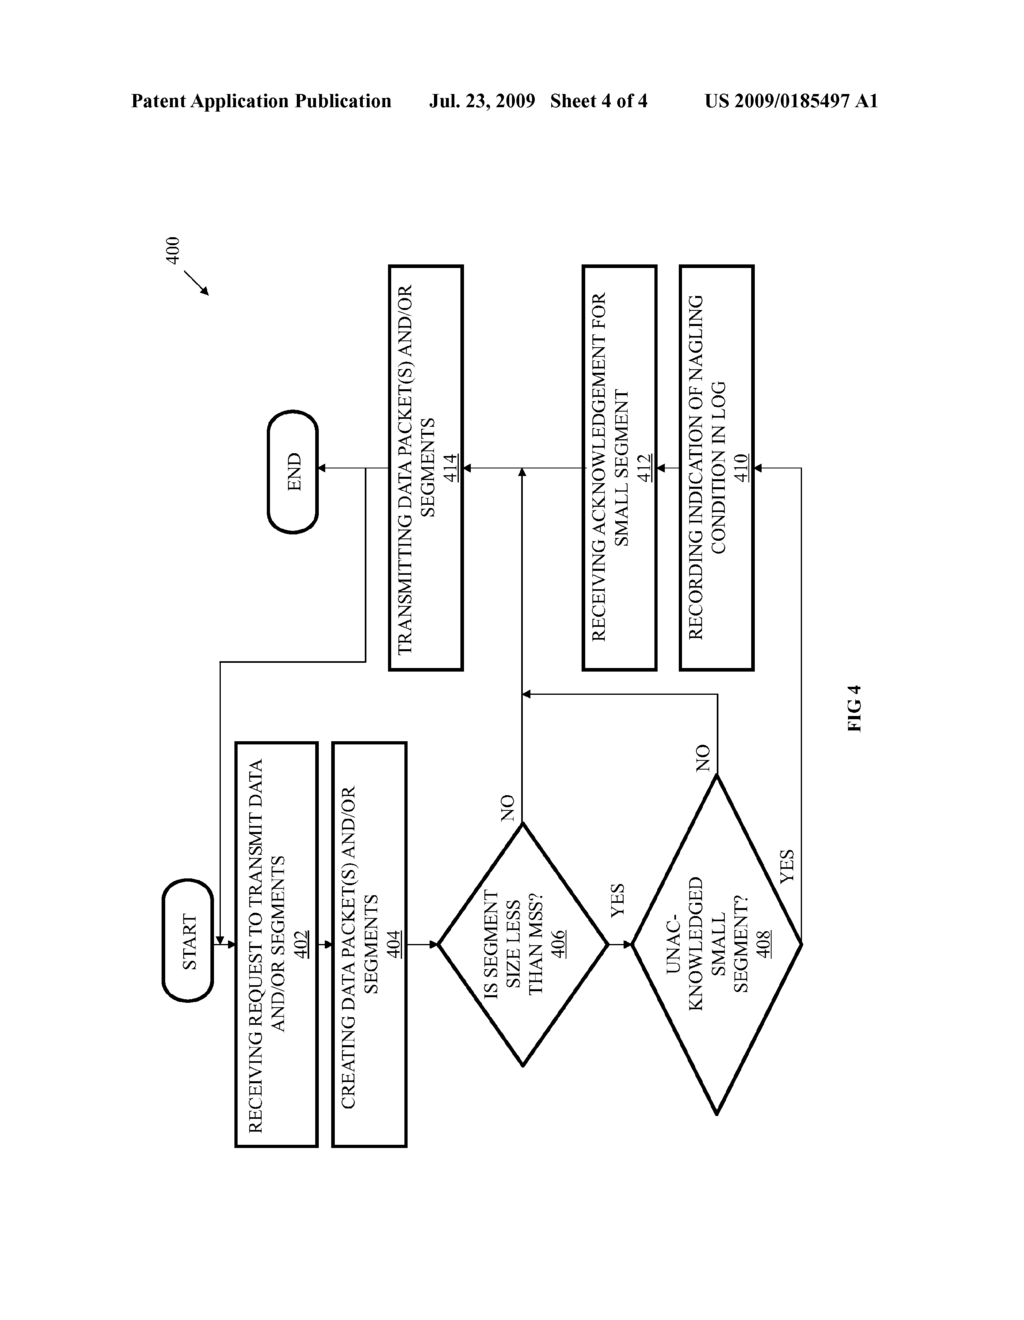 No Network Connection Diagram Electrical Wiring Diagrams Home Detecting Outbound Nagling On A Tcp